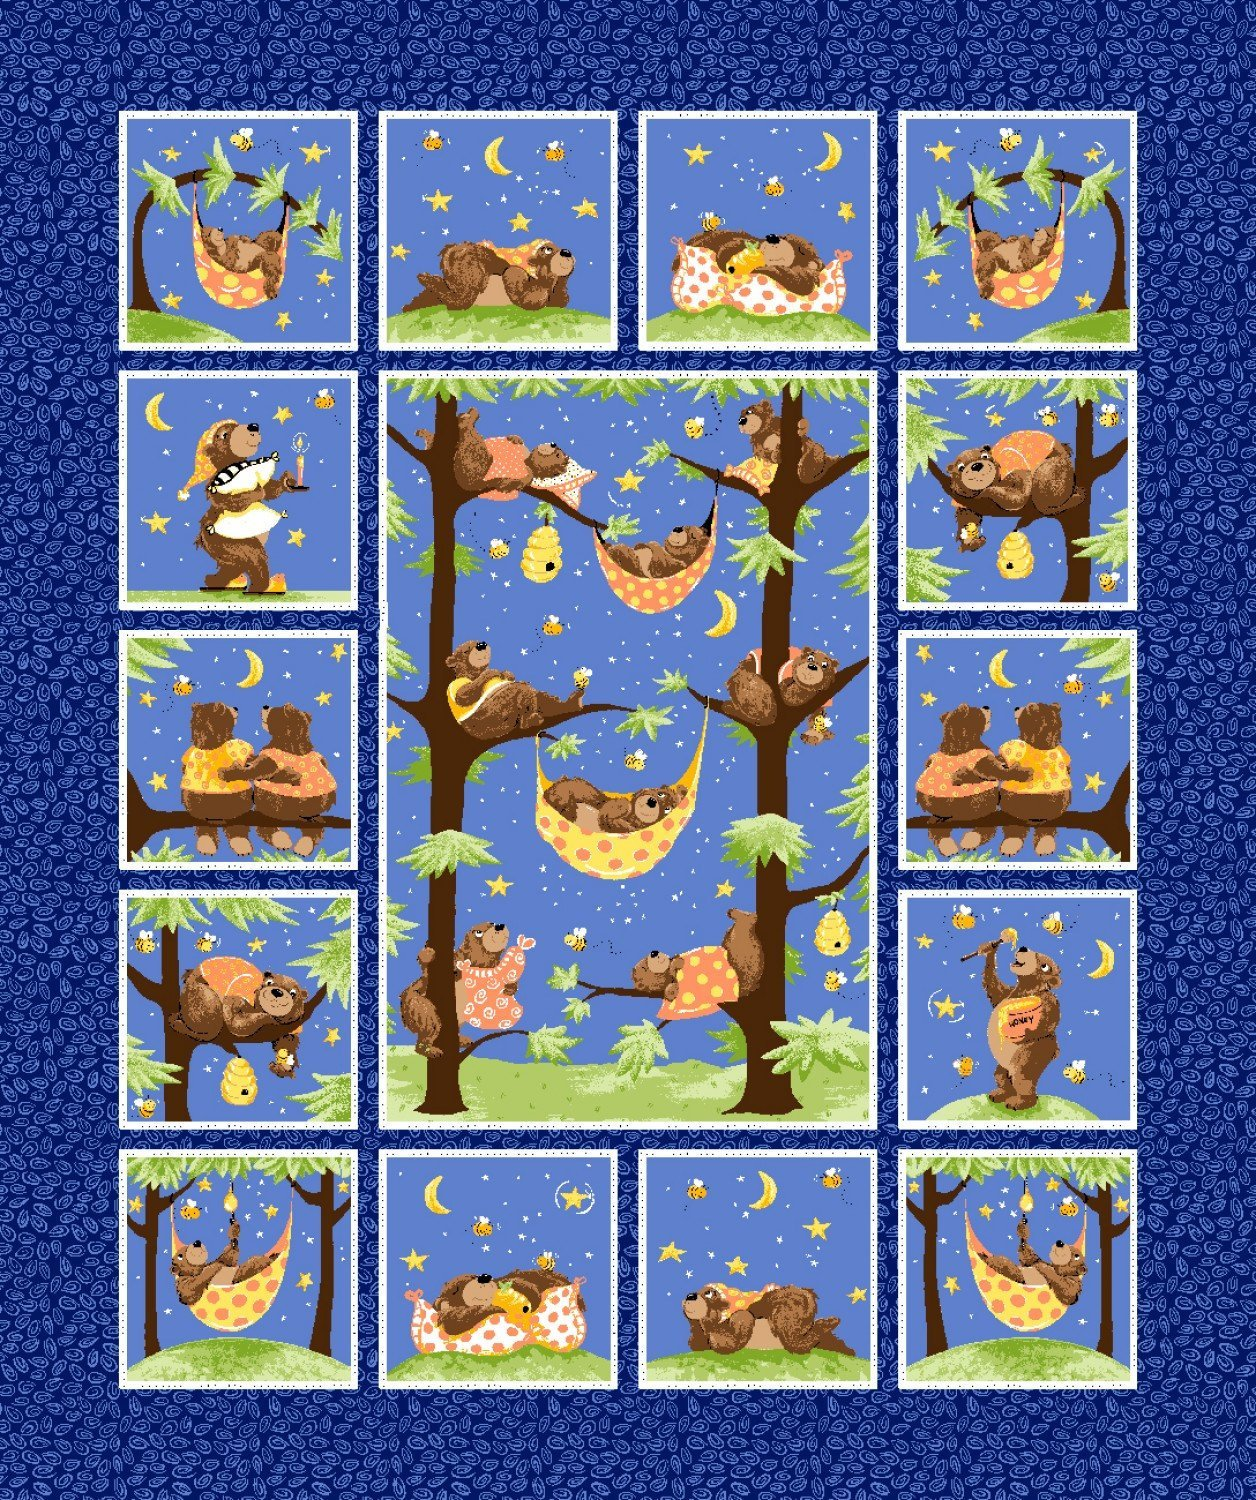 Baron The Bear Susybee Fabric Panels 36 x 43 Inches